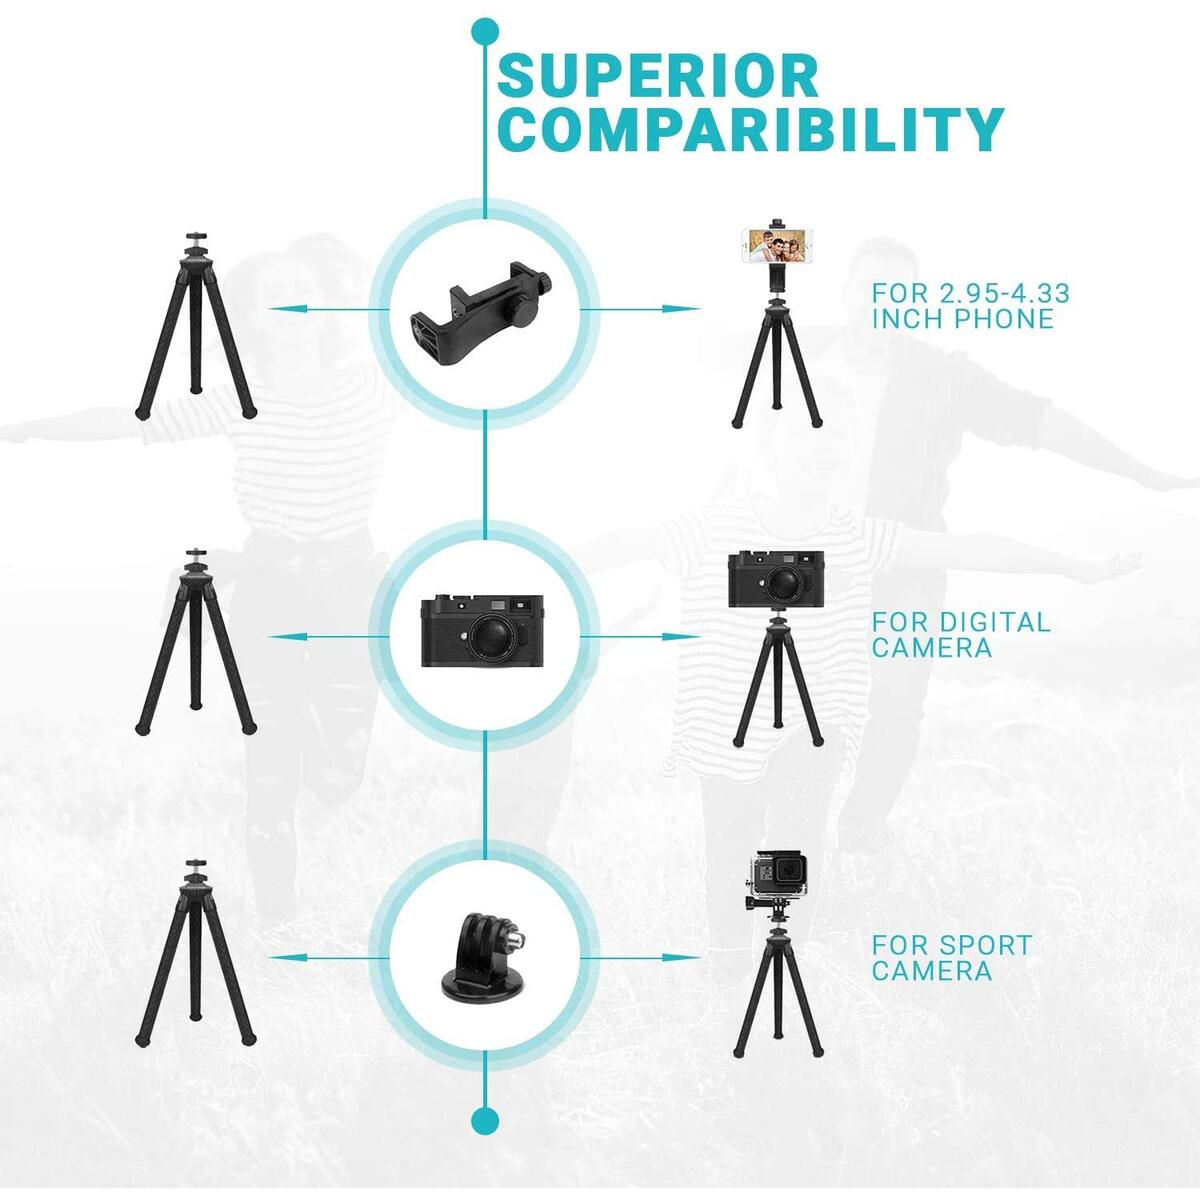 Socialite Flexible Camera Tripod - Bendable 12inch Mini Tripod Stand w/Rotating Cell Phone Mount for Smartphone - Compatible with iPhone, Android, DSLR, Go PRO, Nikon, Canon, Sony Digital Cameras